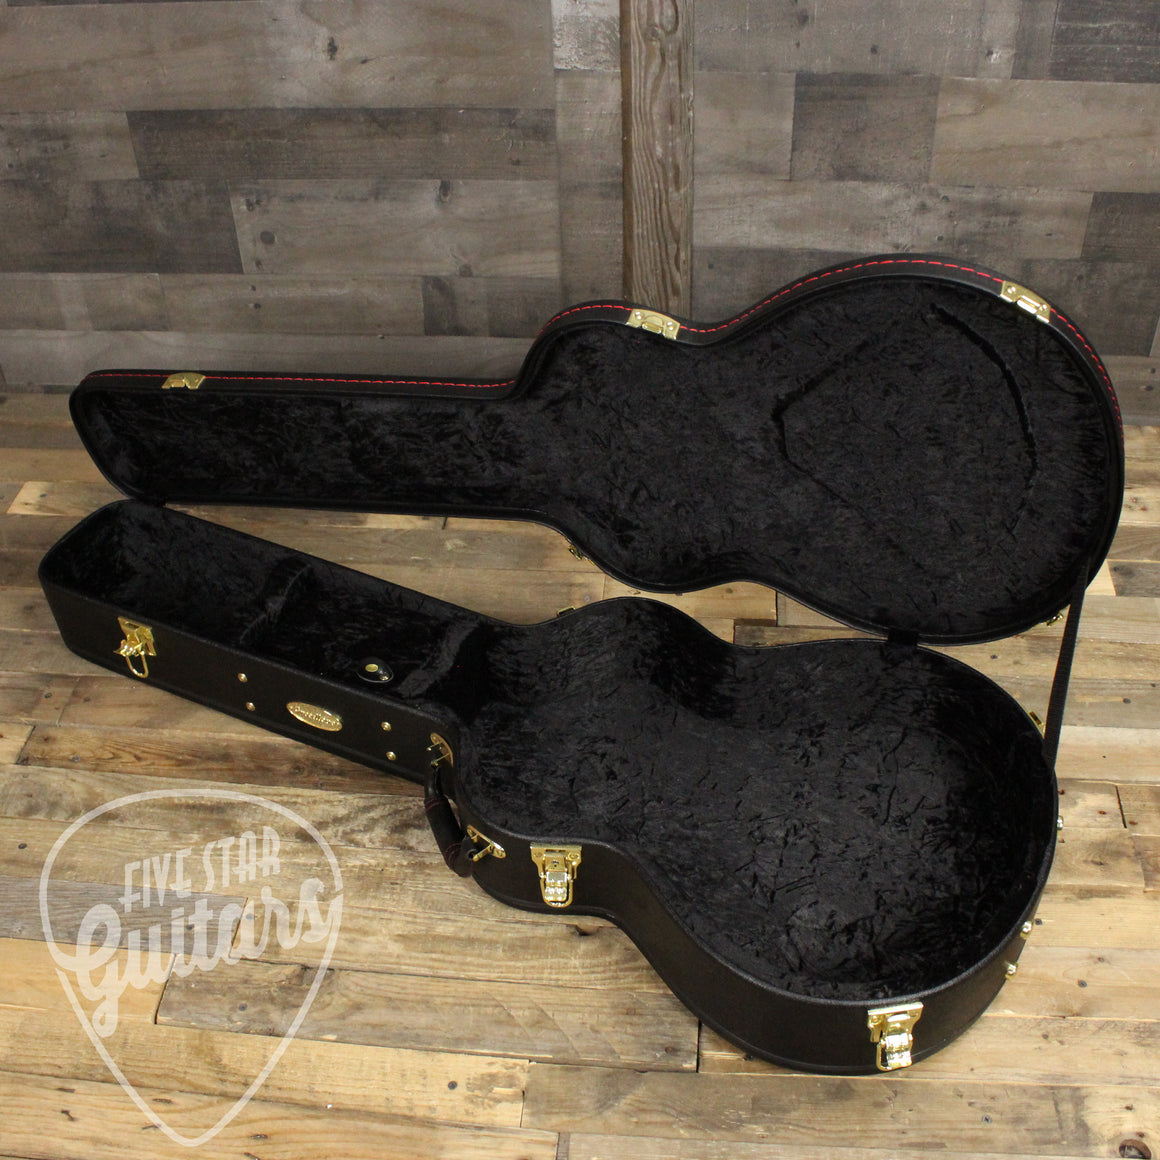 Breedlove Hard Shell Concert Case